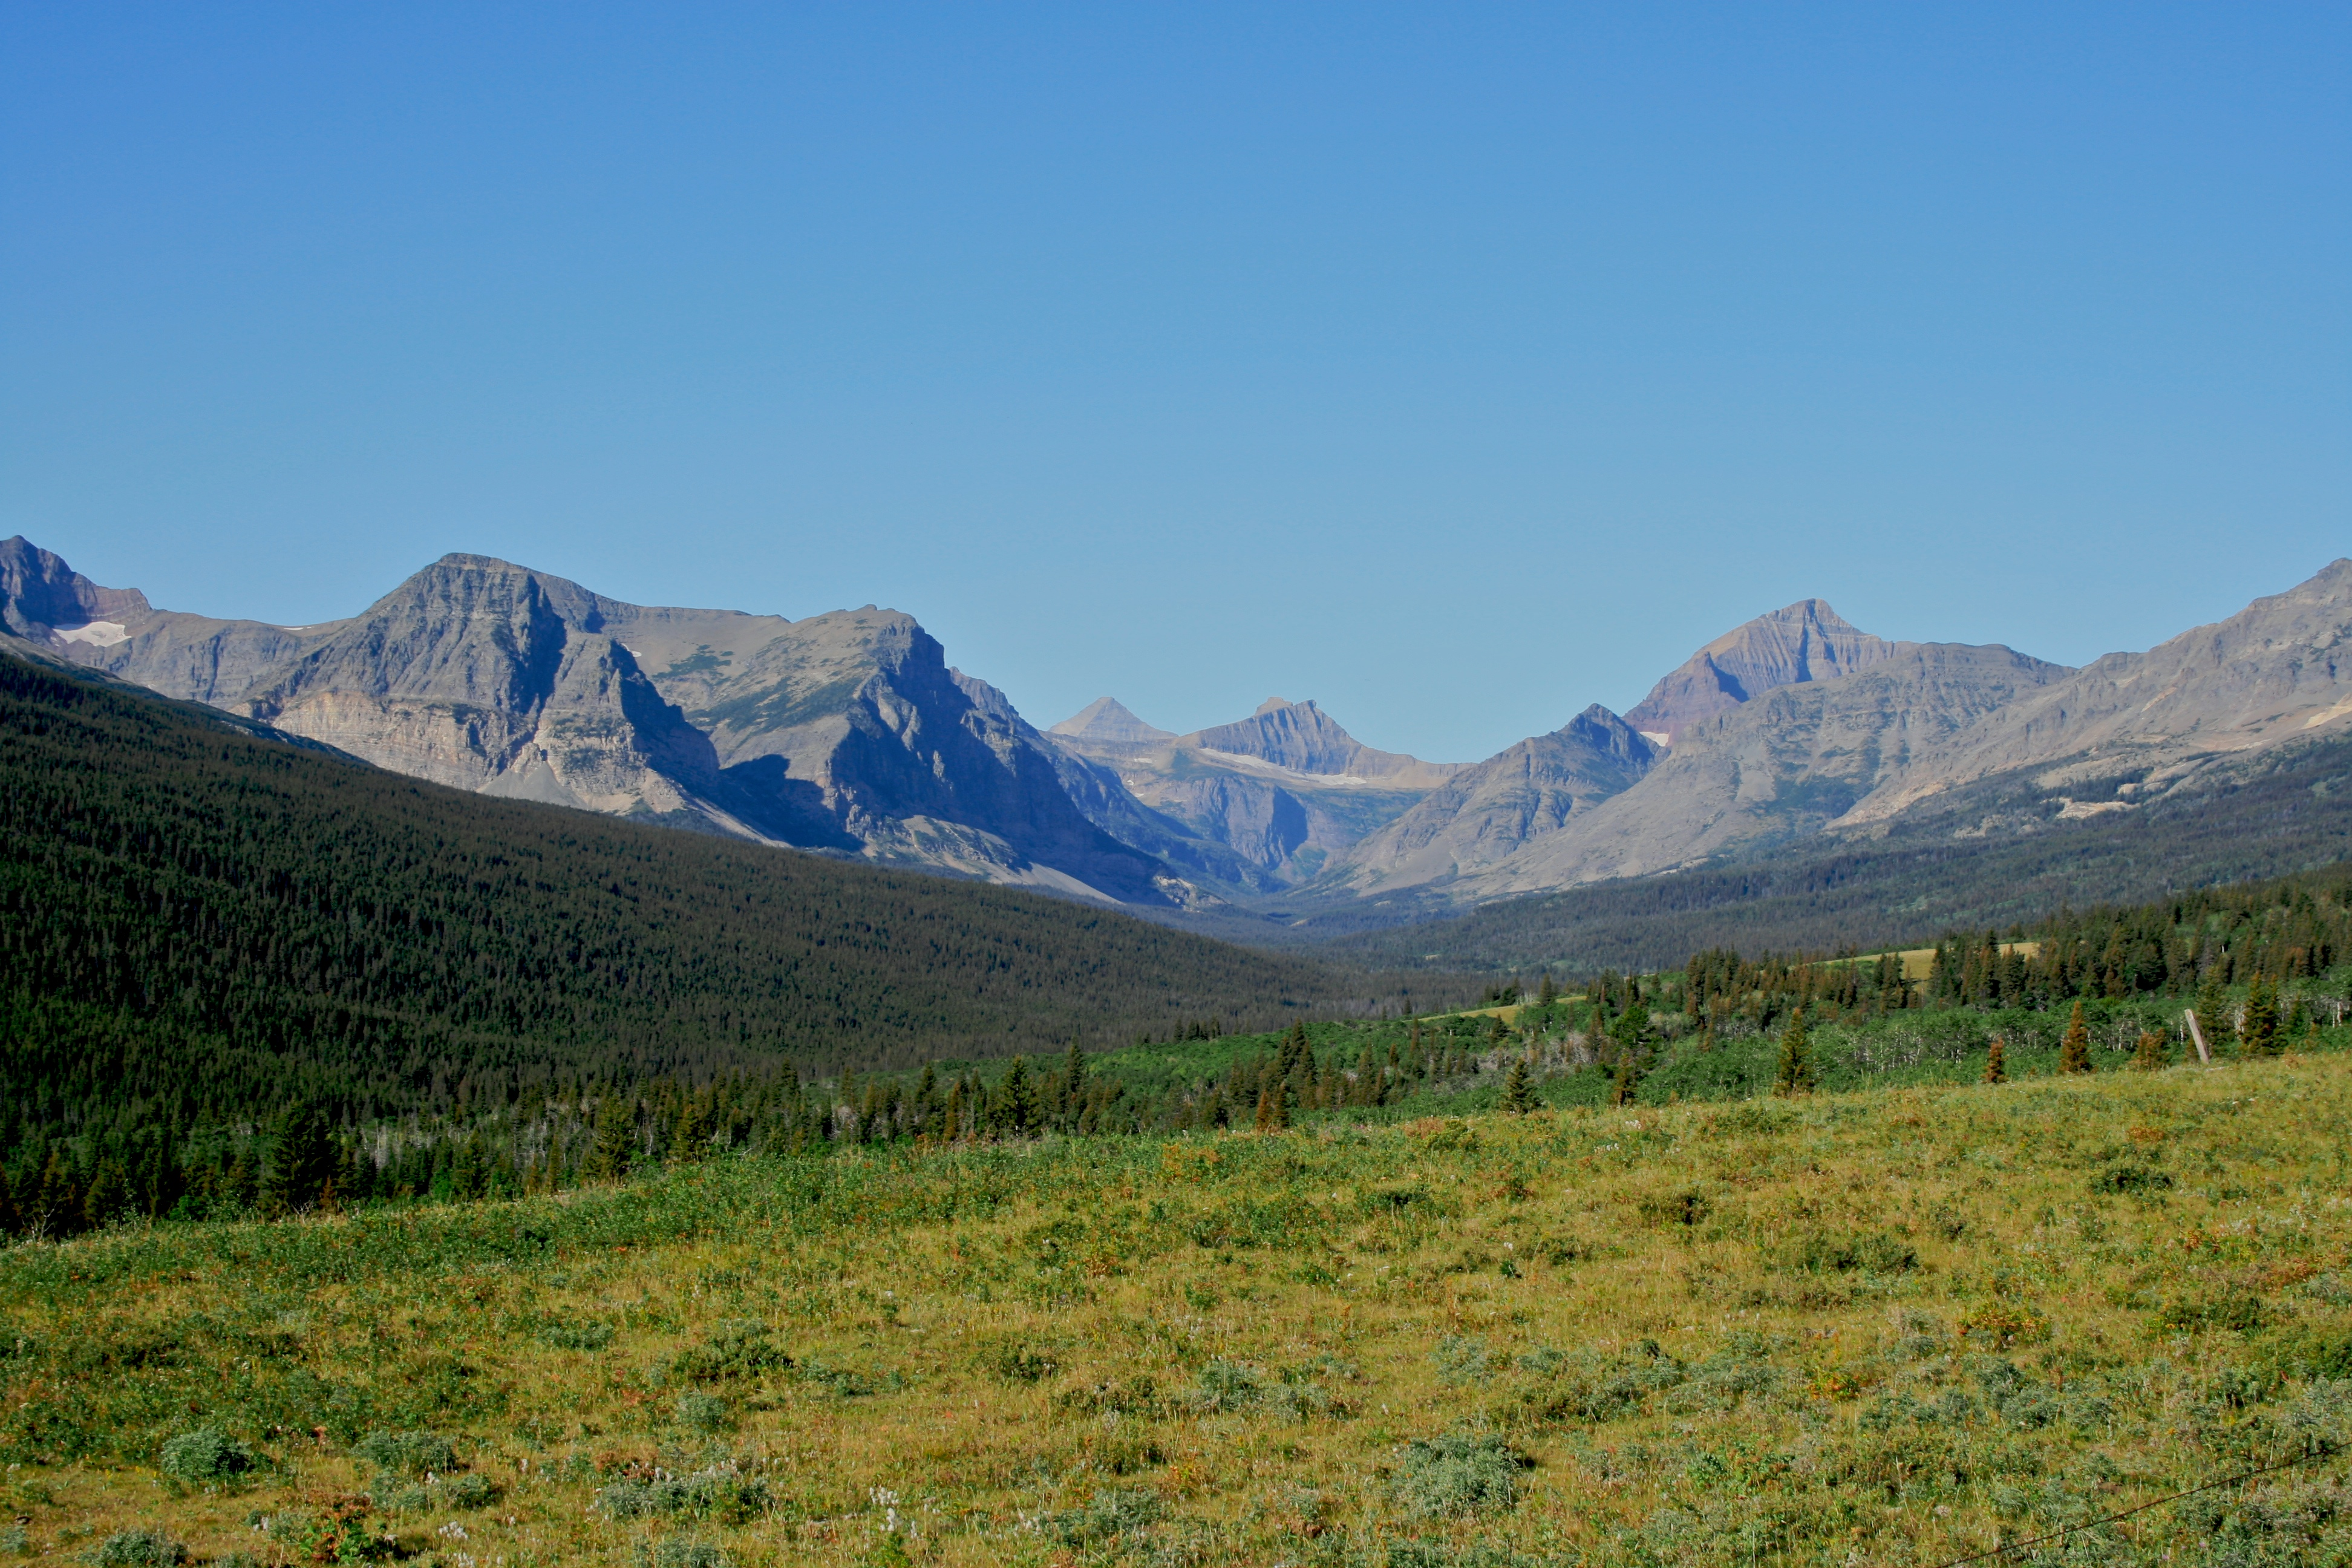 there lies the peaks of Glacier National Park